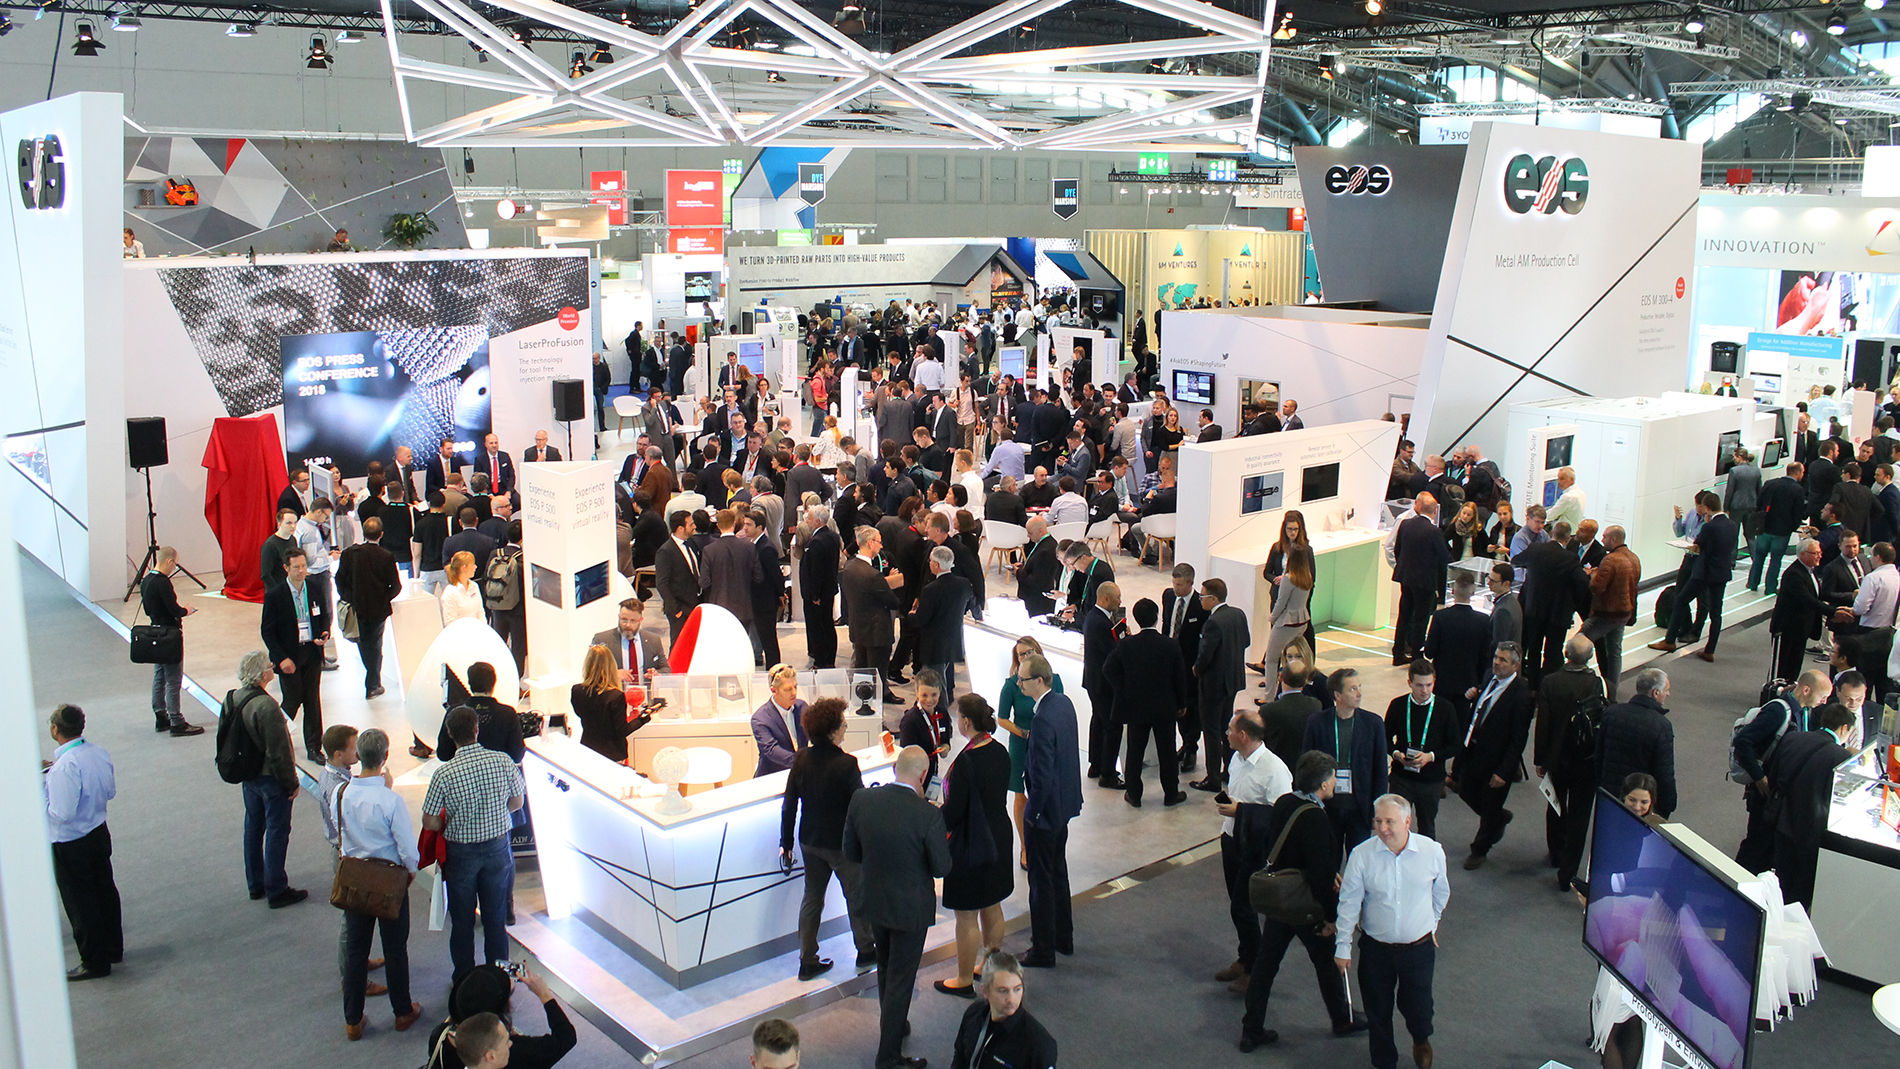 D Printing Exhibition Frankfurt : Formnext u international exhibition and conference on the next